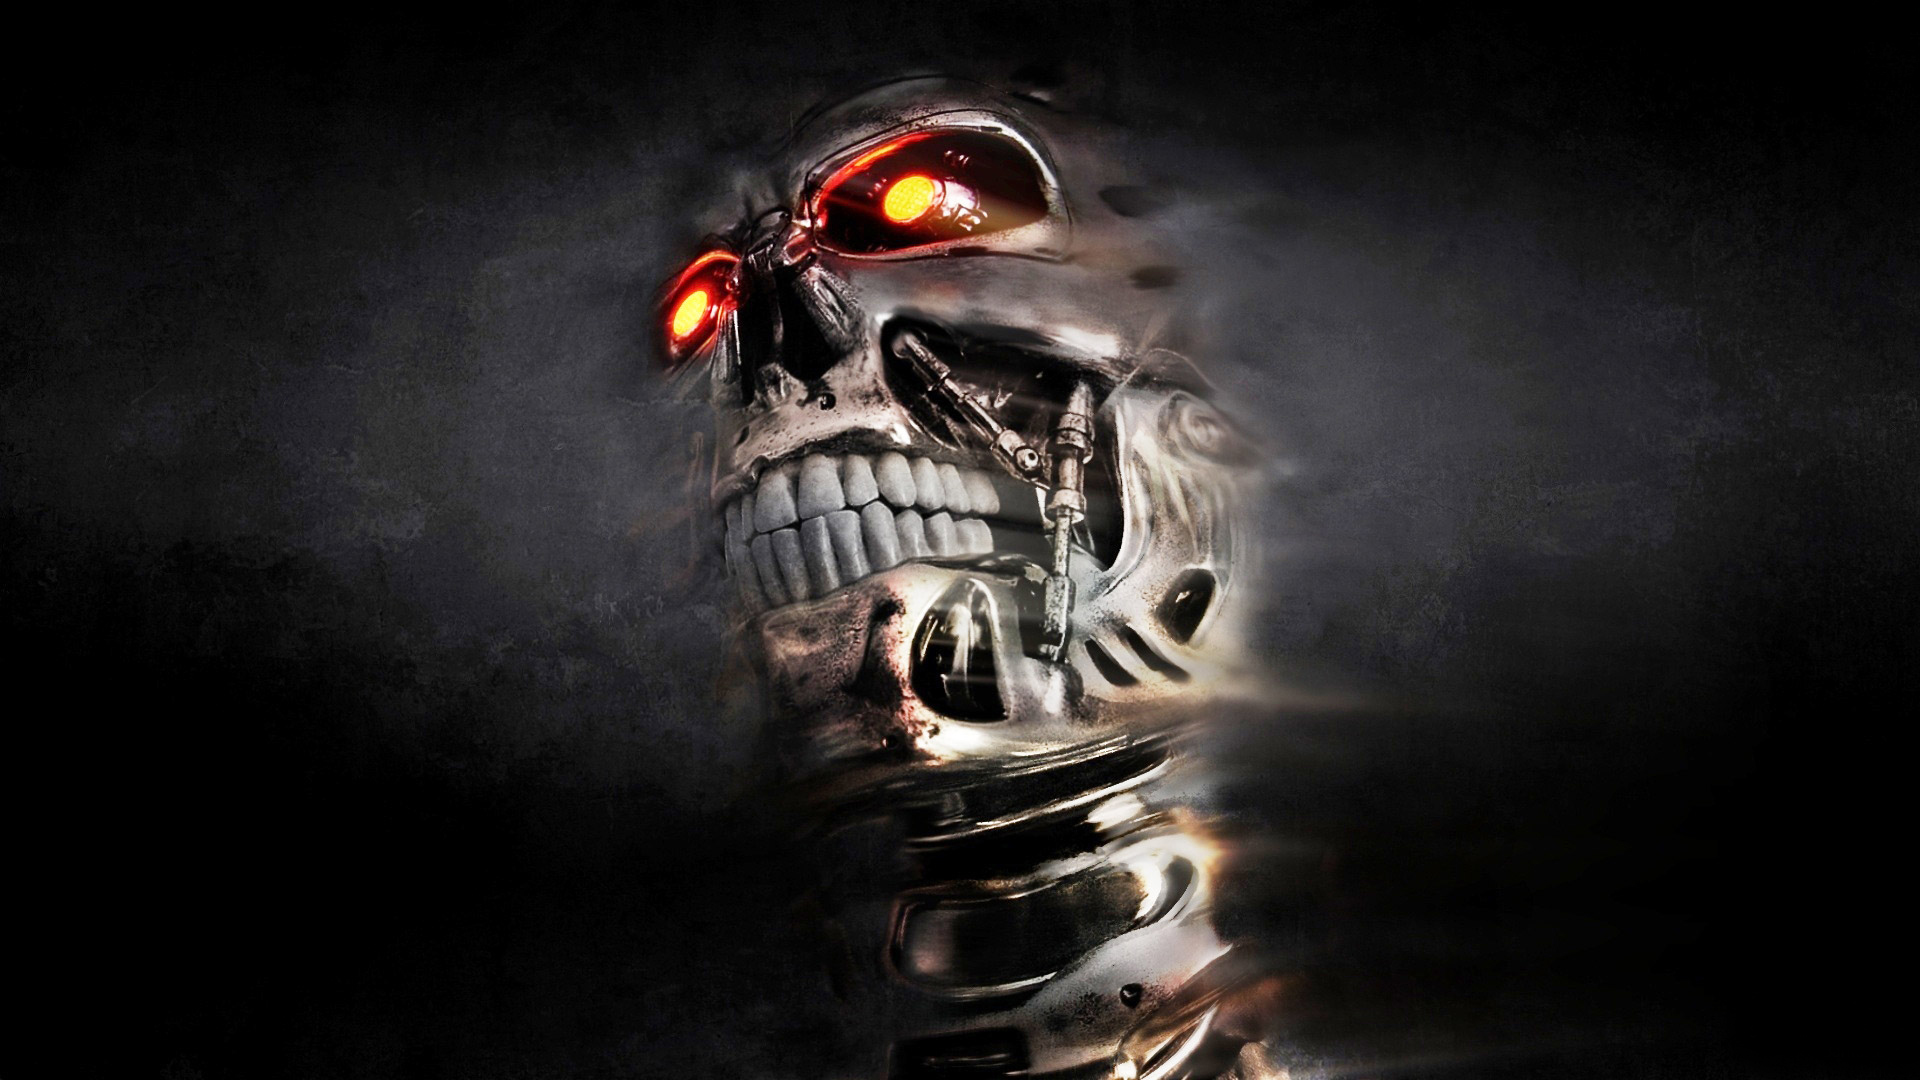 3D Skull HD Wallpapers HD Wallpapers 1920x1080